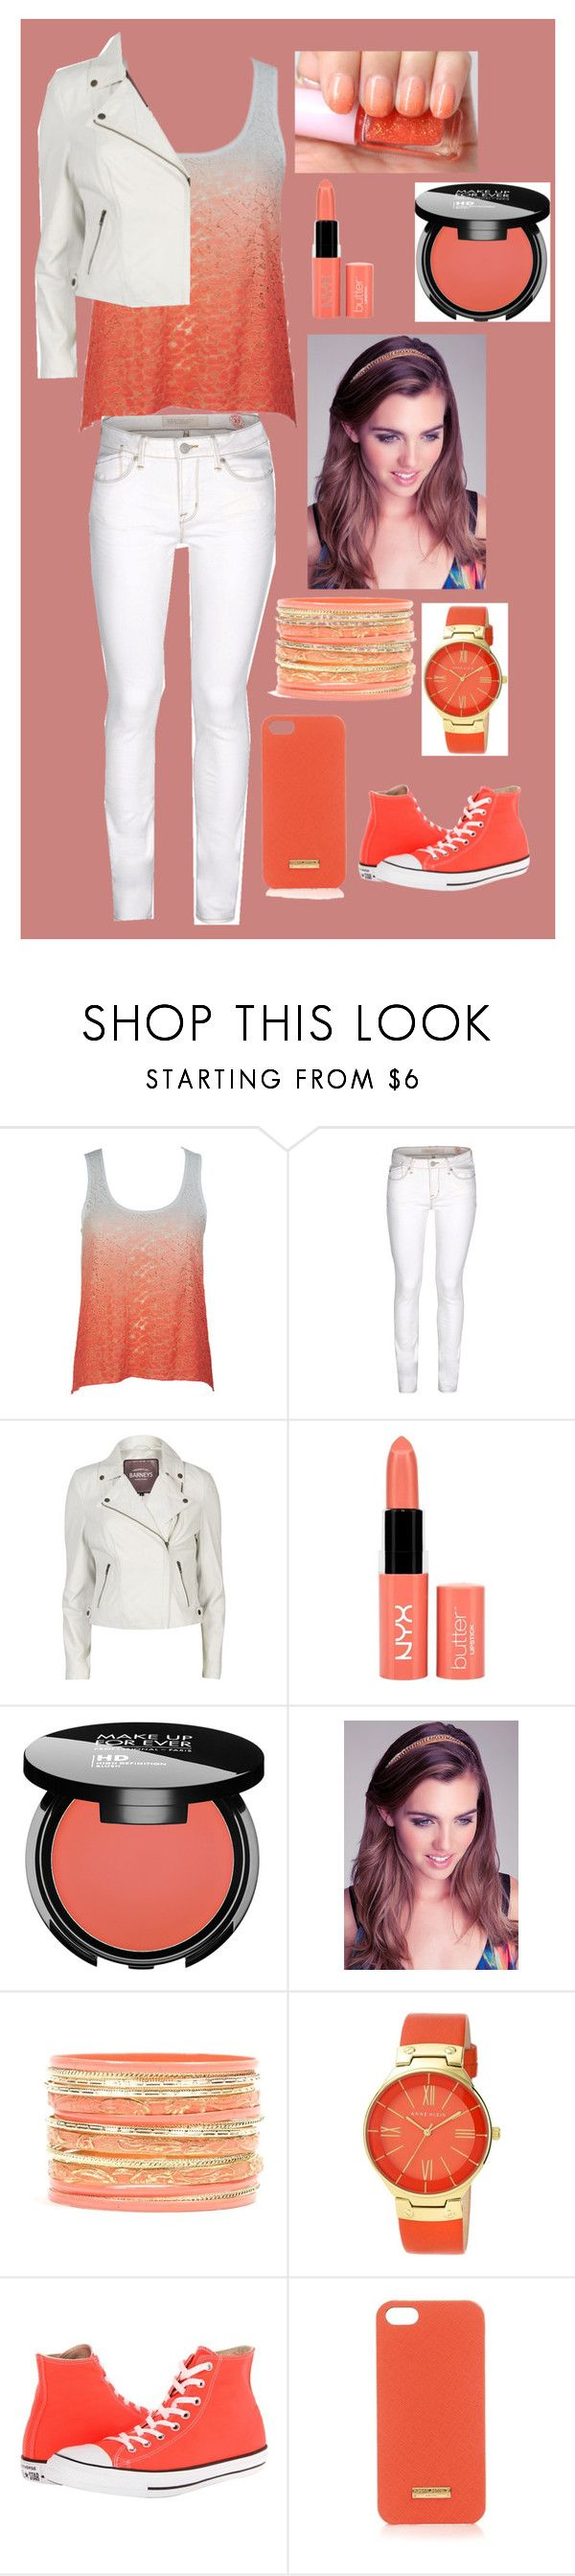 """Untitled #65"" by shusha123 ❤ liked on Polyvore featuring Marc by Marc Jacobs, Barneys New York, Etude House, MAKE UP FOR EVER, Bebe, Anne Klein, Converse and Henri Bendel"